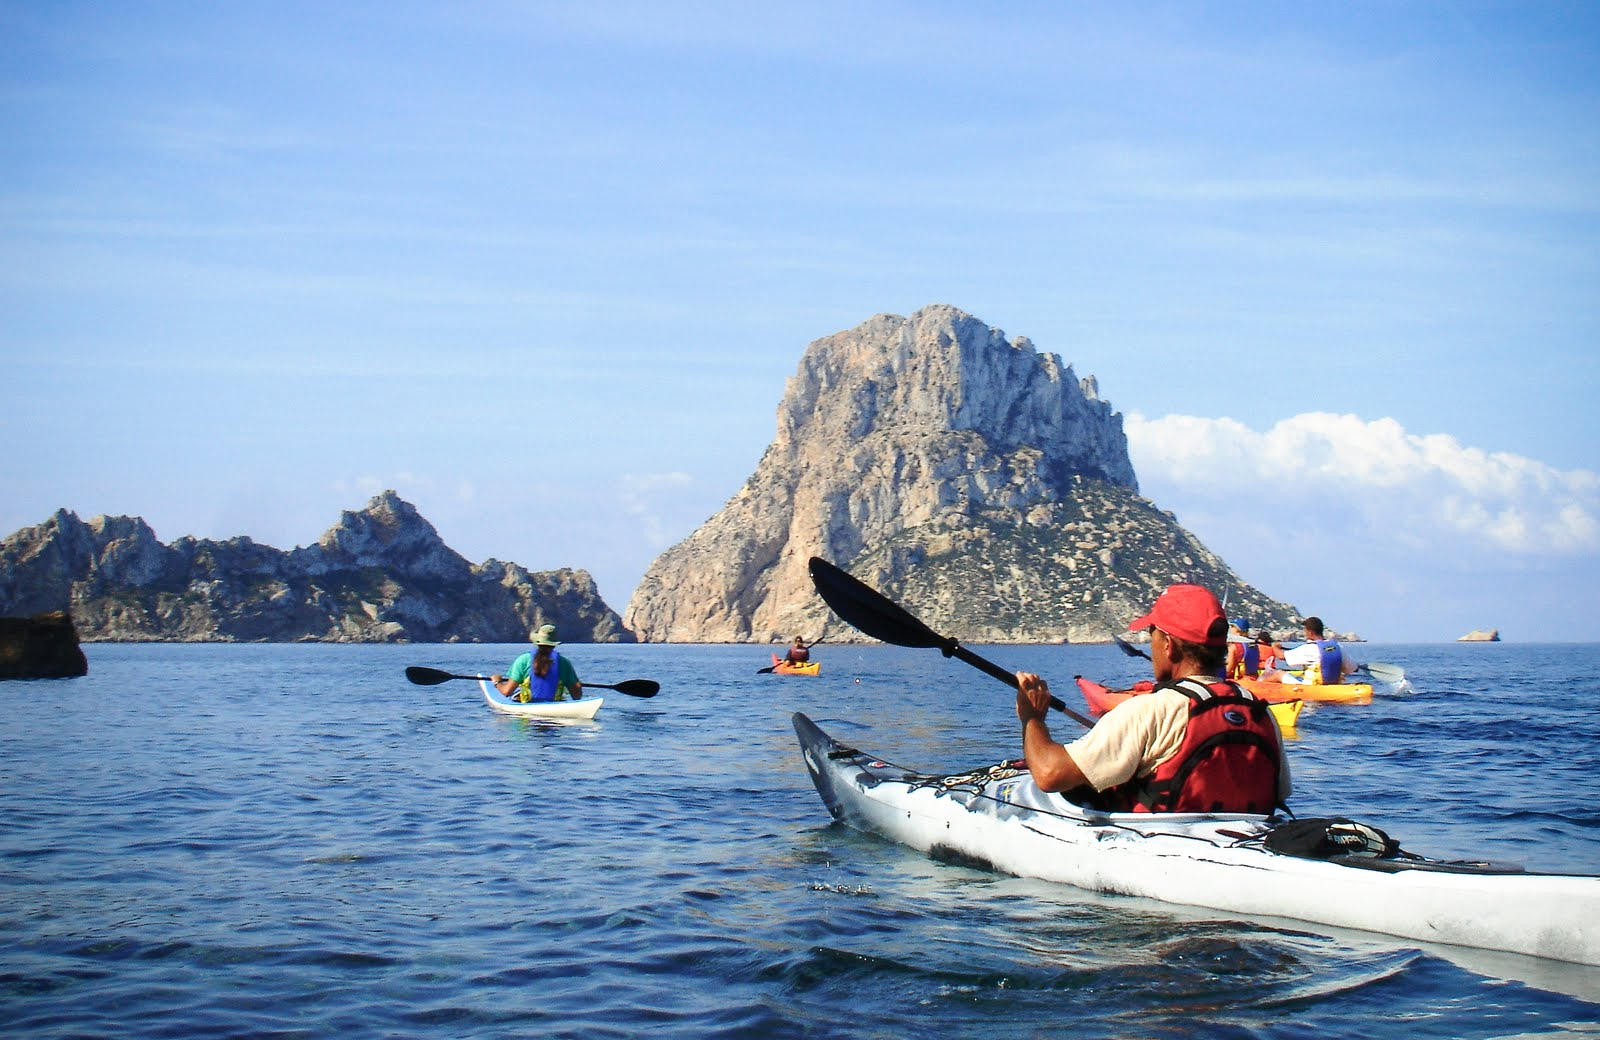 Kayaking in Ibiza in the Mediterranean Sea